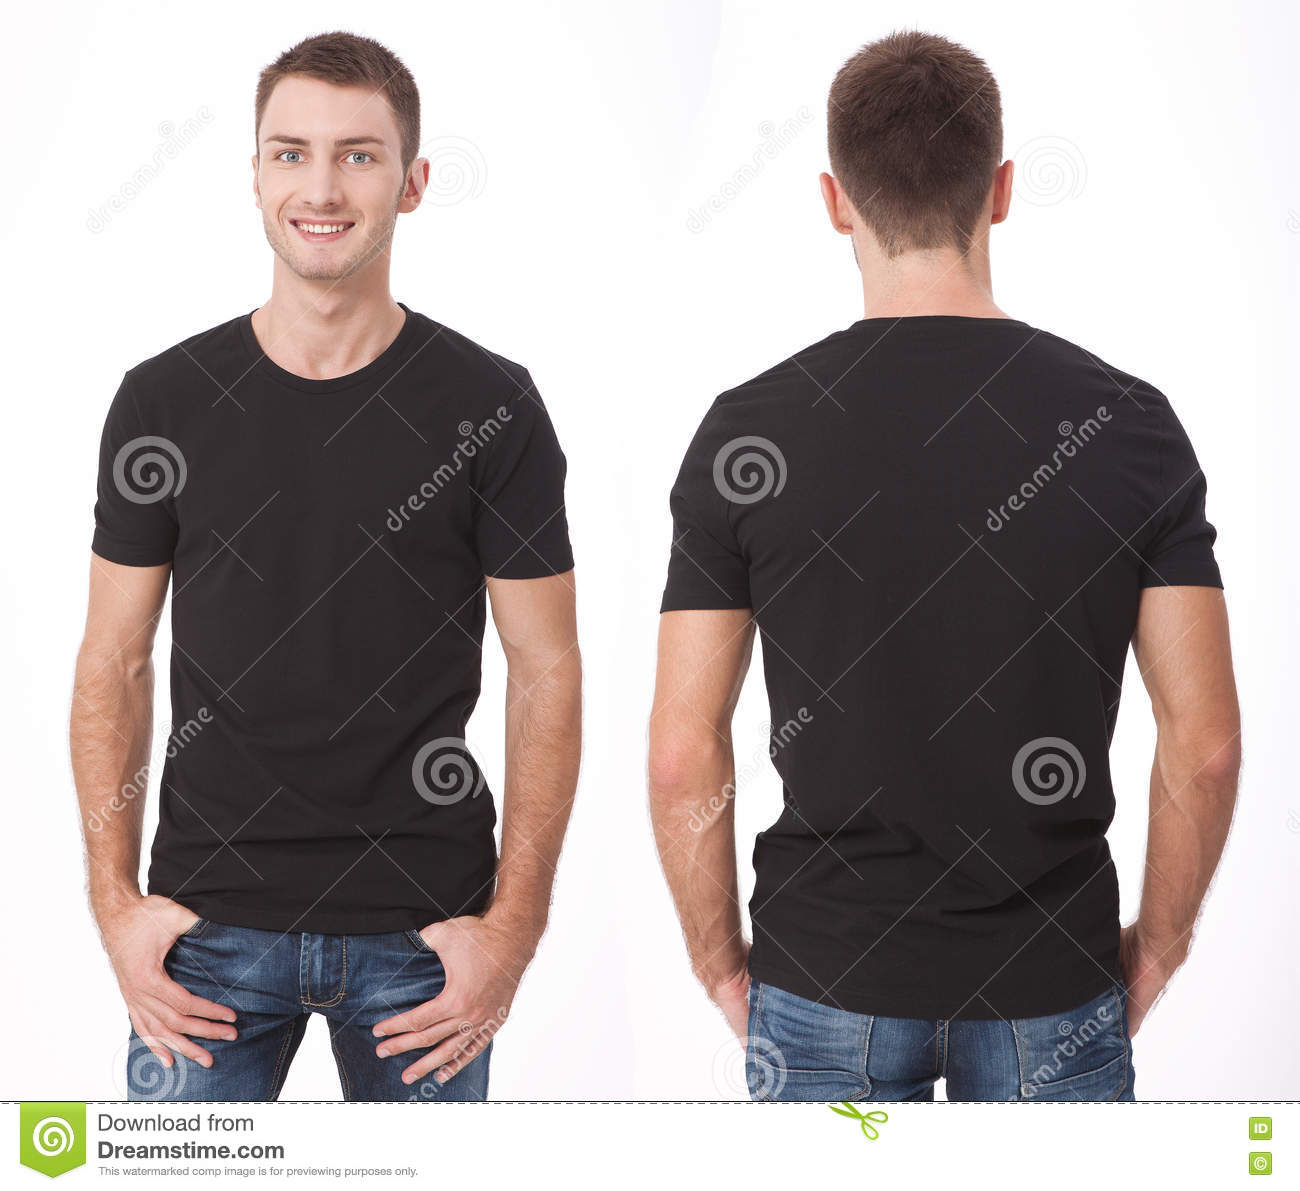 T-shirt design and people concept - close up of young man in blank white t-shirt. Clean shirt mock up for design set.